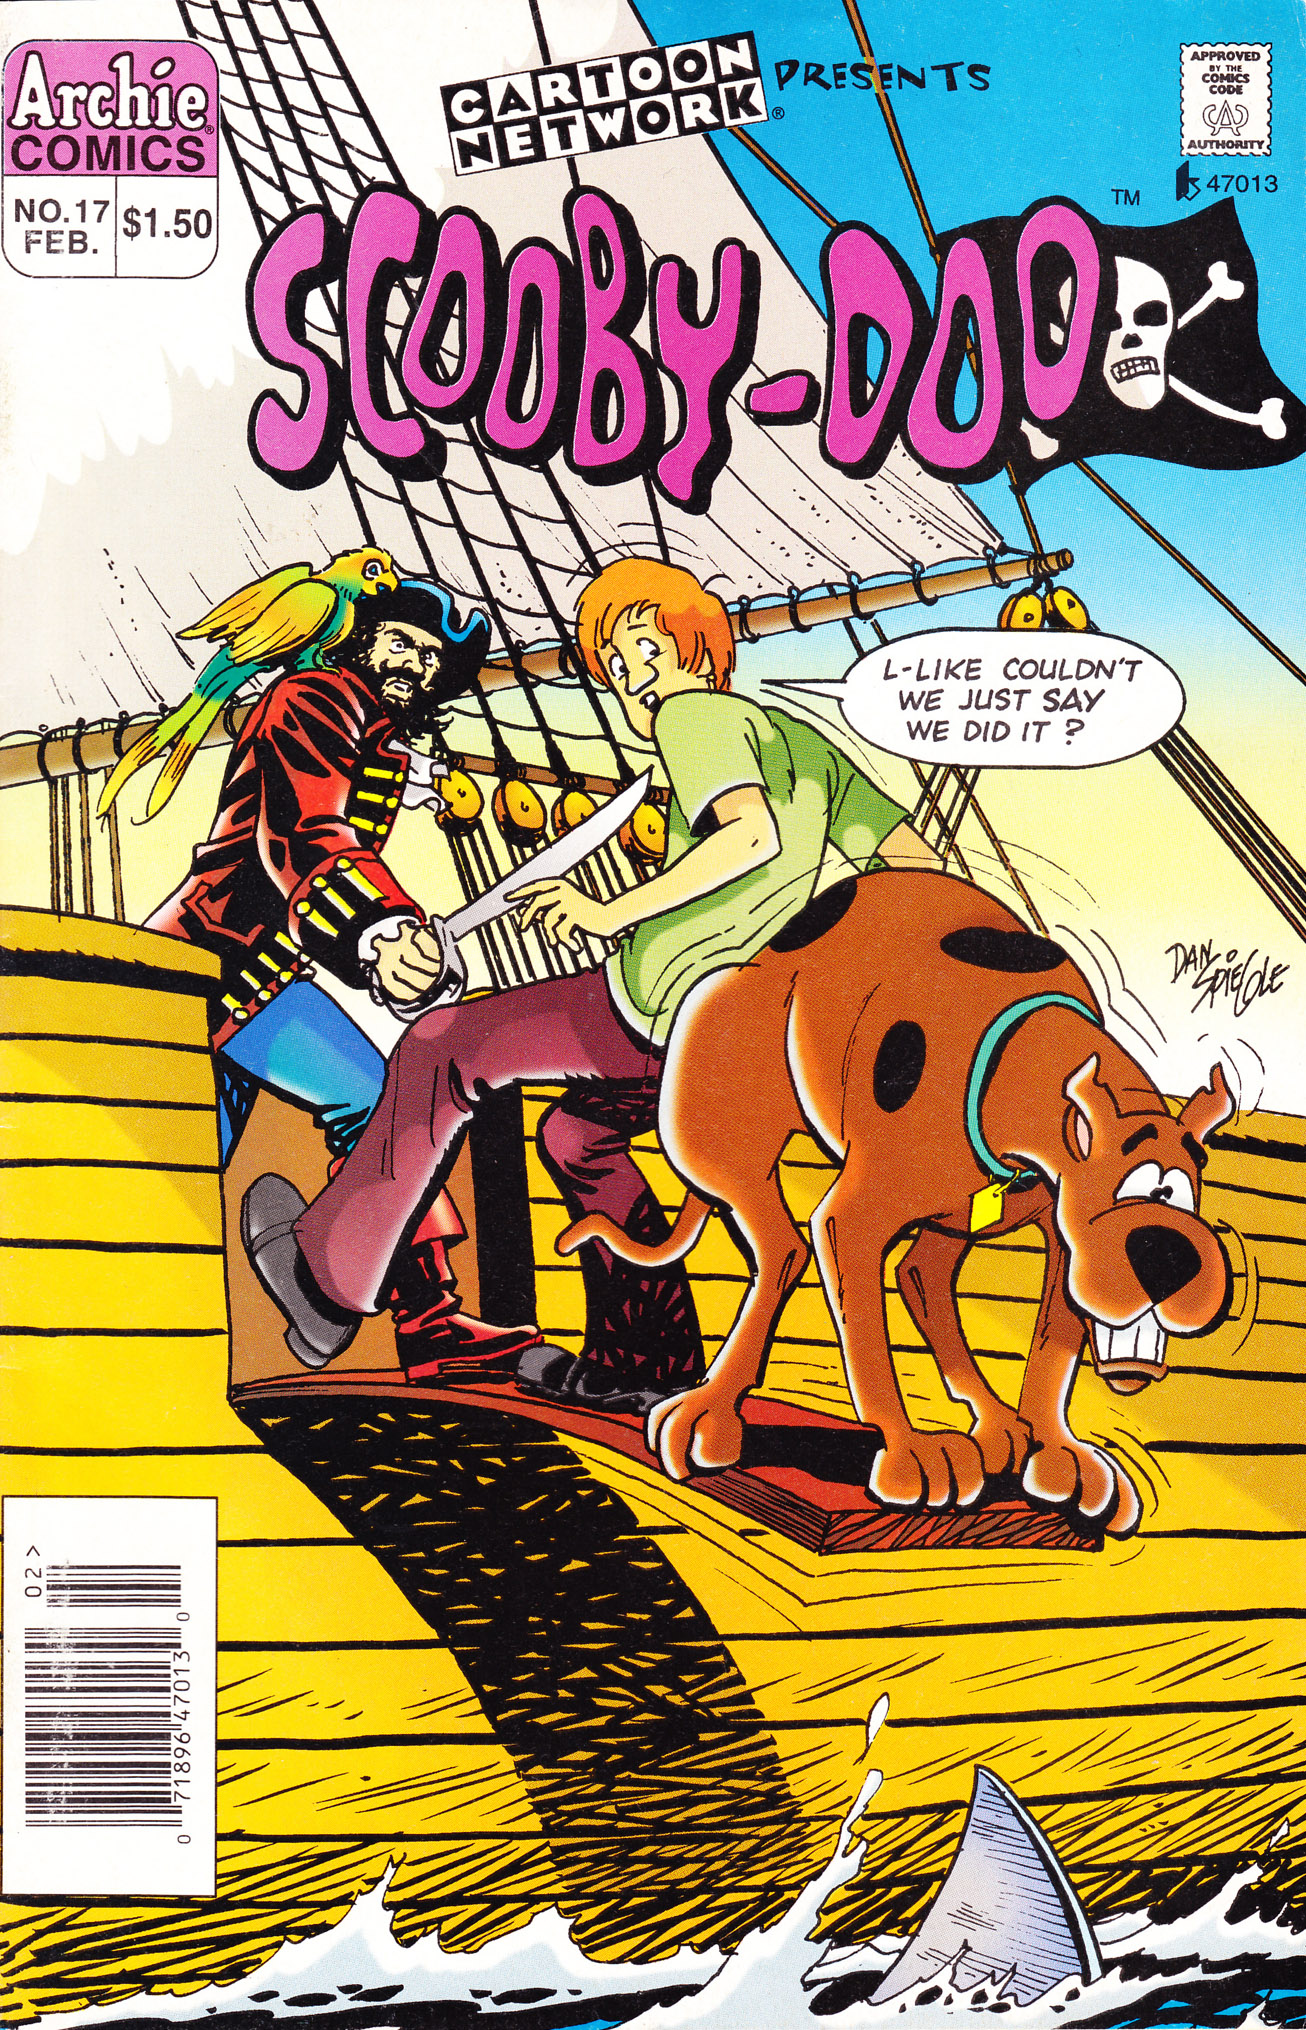 Read online Scooby-Doo (1995) comic -  Issue #17 - 1